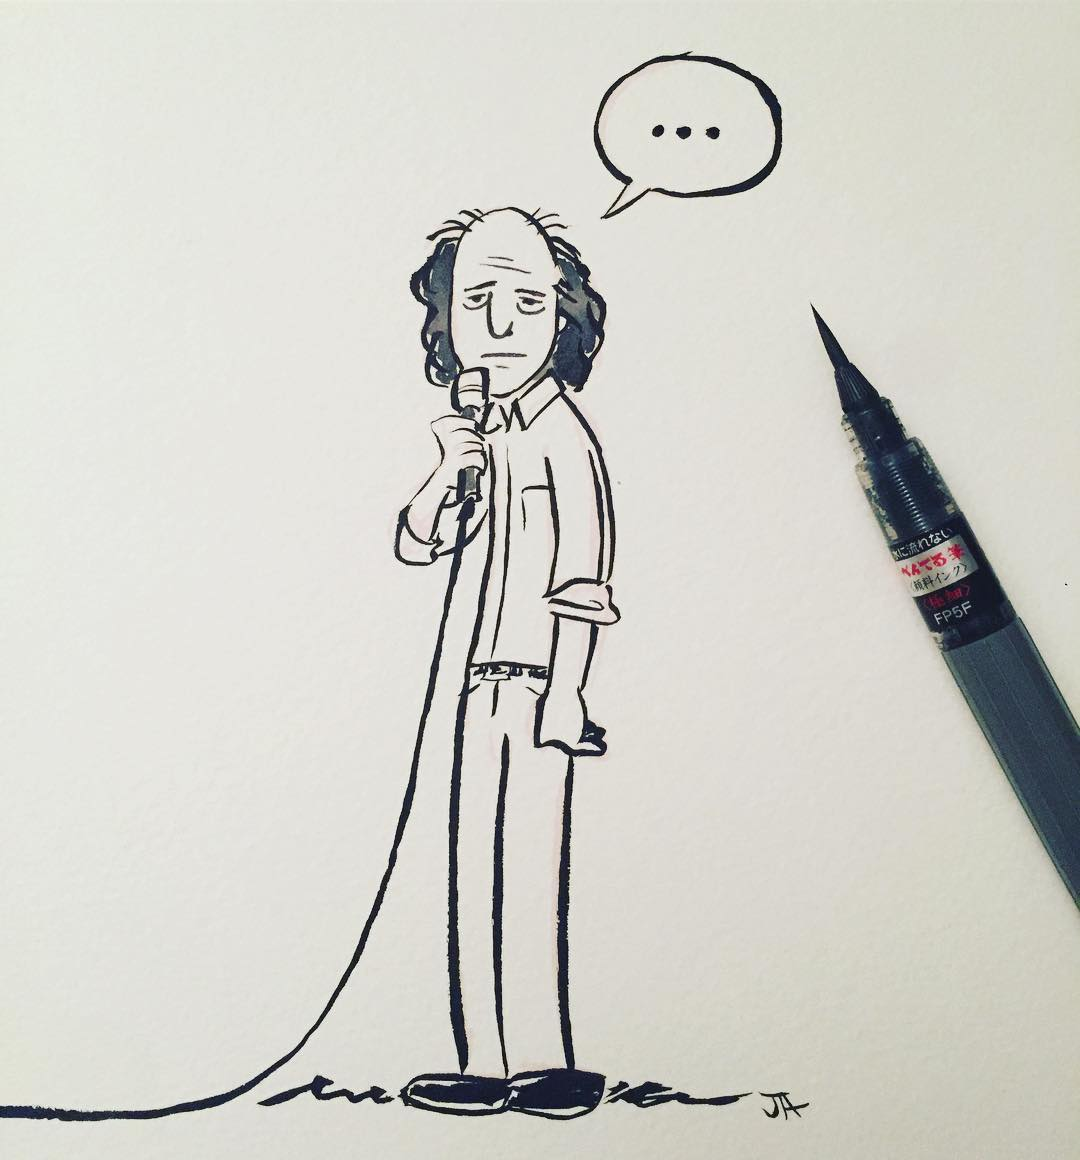 A deadpan hello to Steven Wright for today's #inktober. #comedy #standup #comedian #stevenwright #doodle #deadpan #oneliners #drawing #artistsoninstagram #inktober2017.jpg